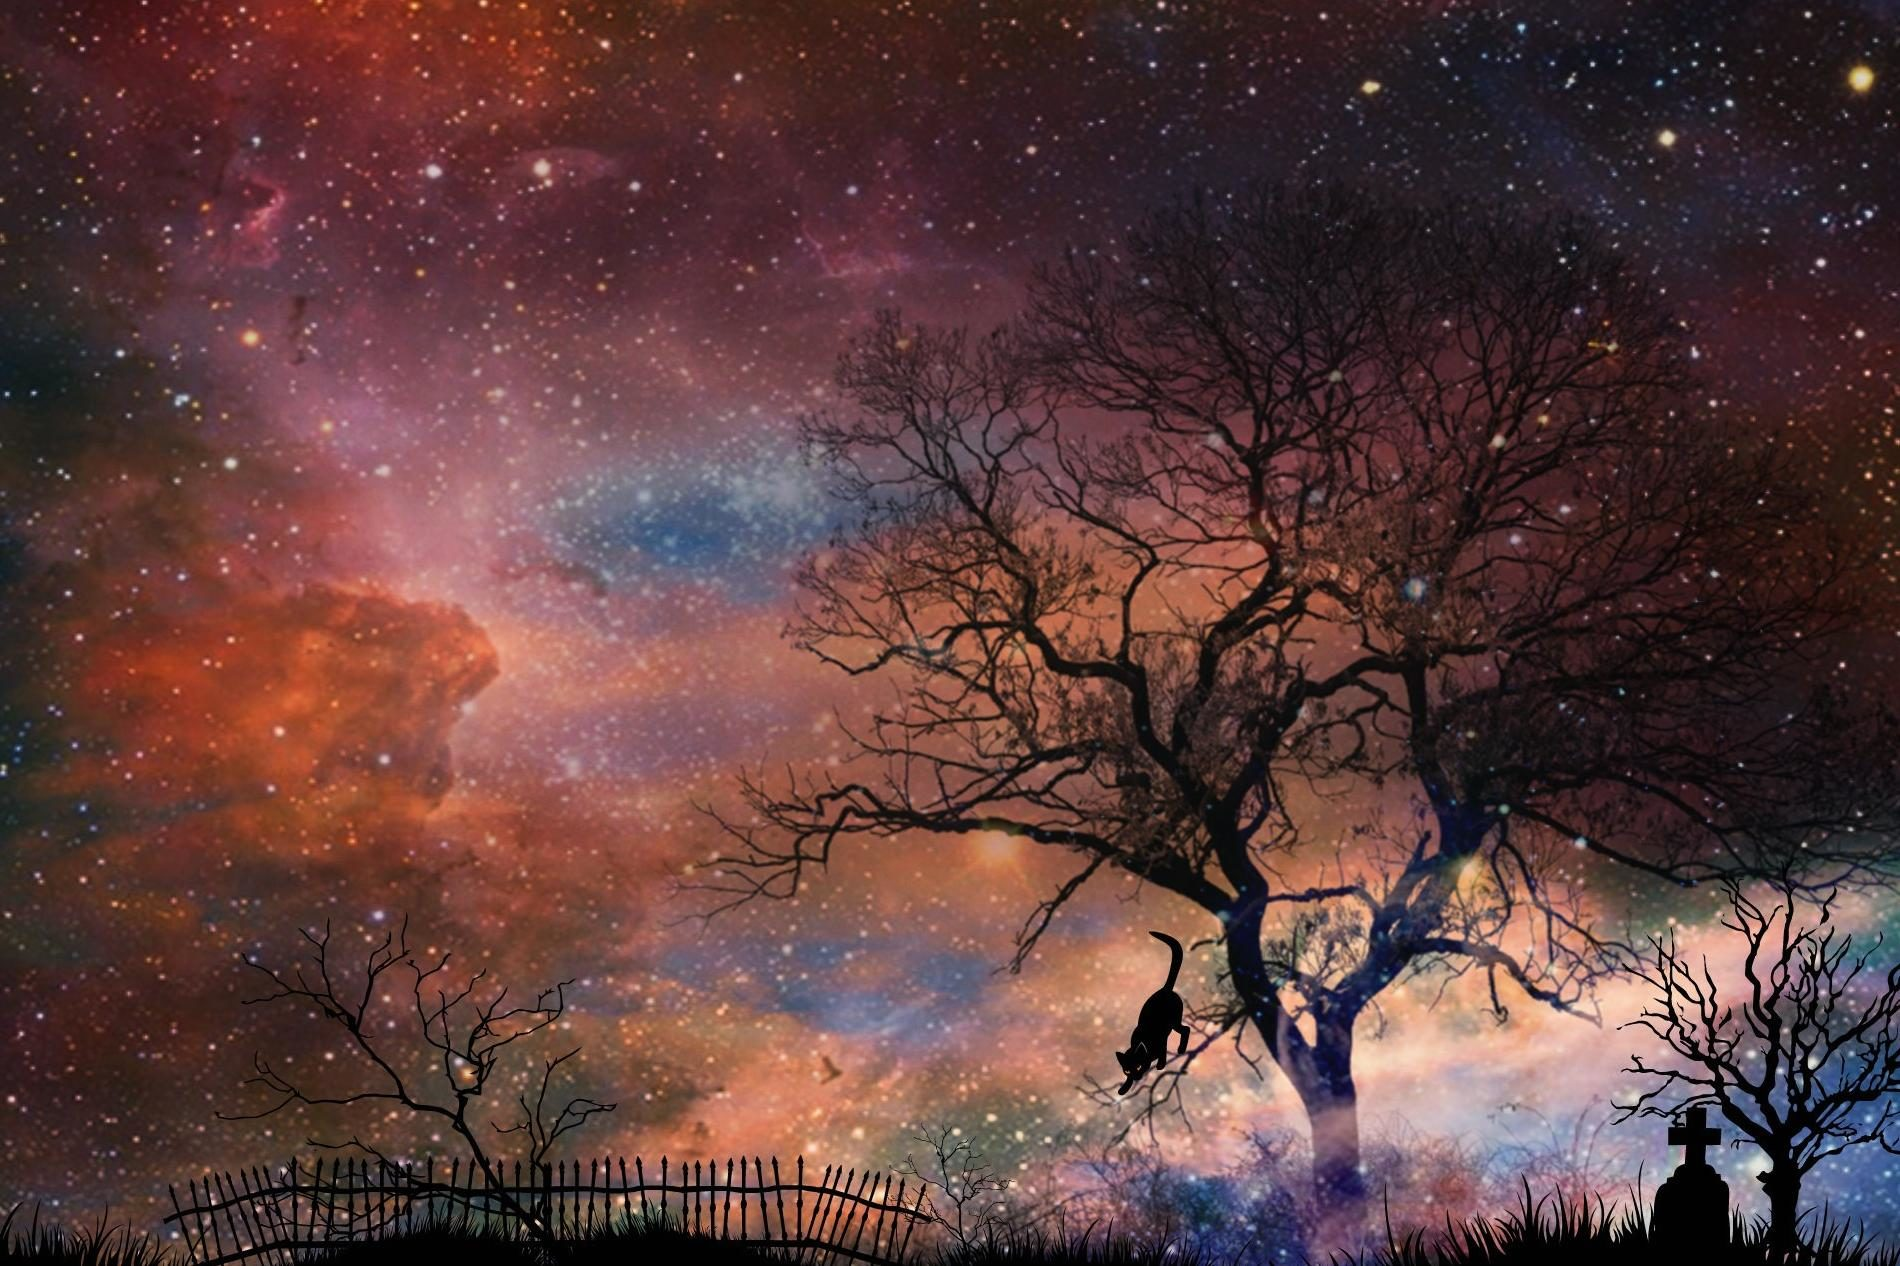 Free picture night photomontage mystery fantasy silhouette landscape